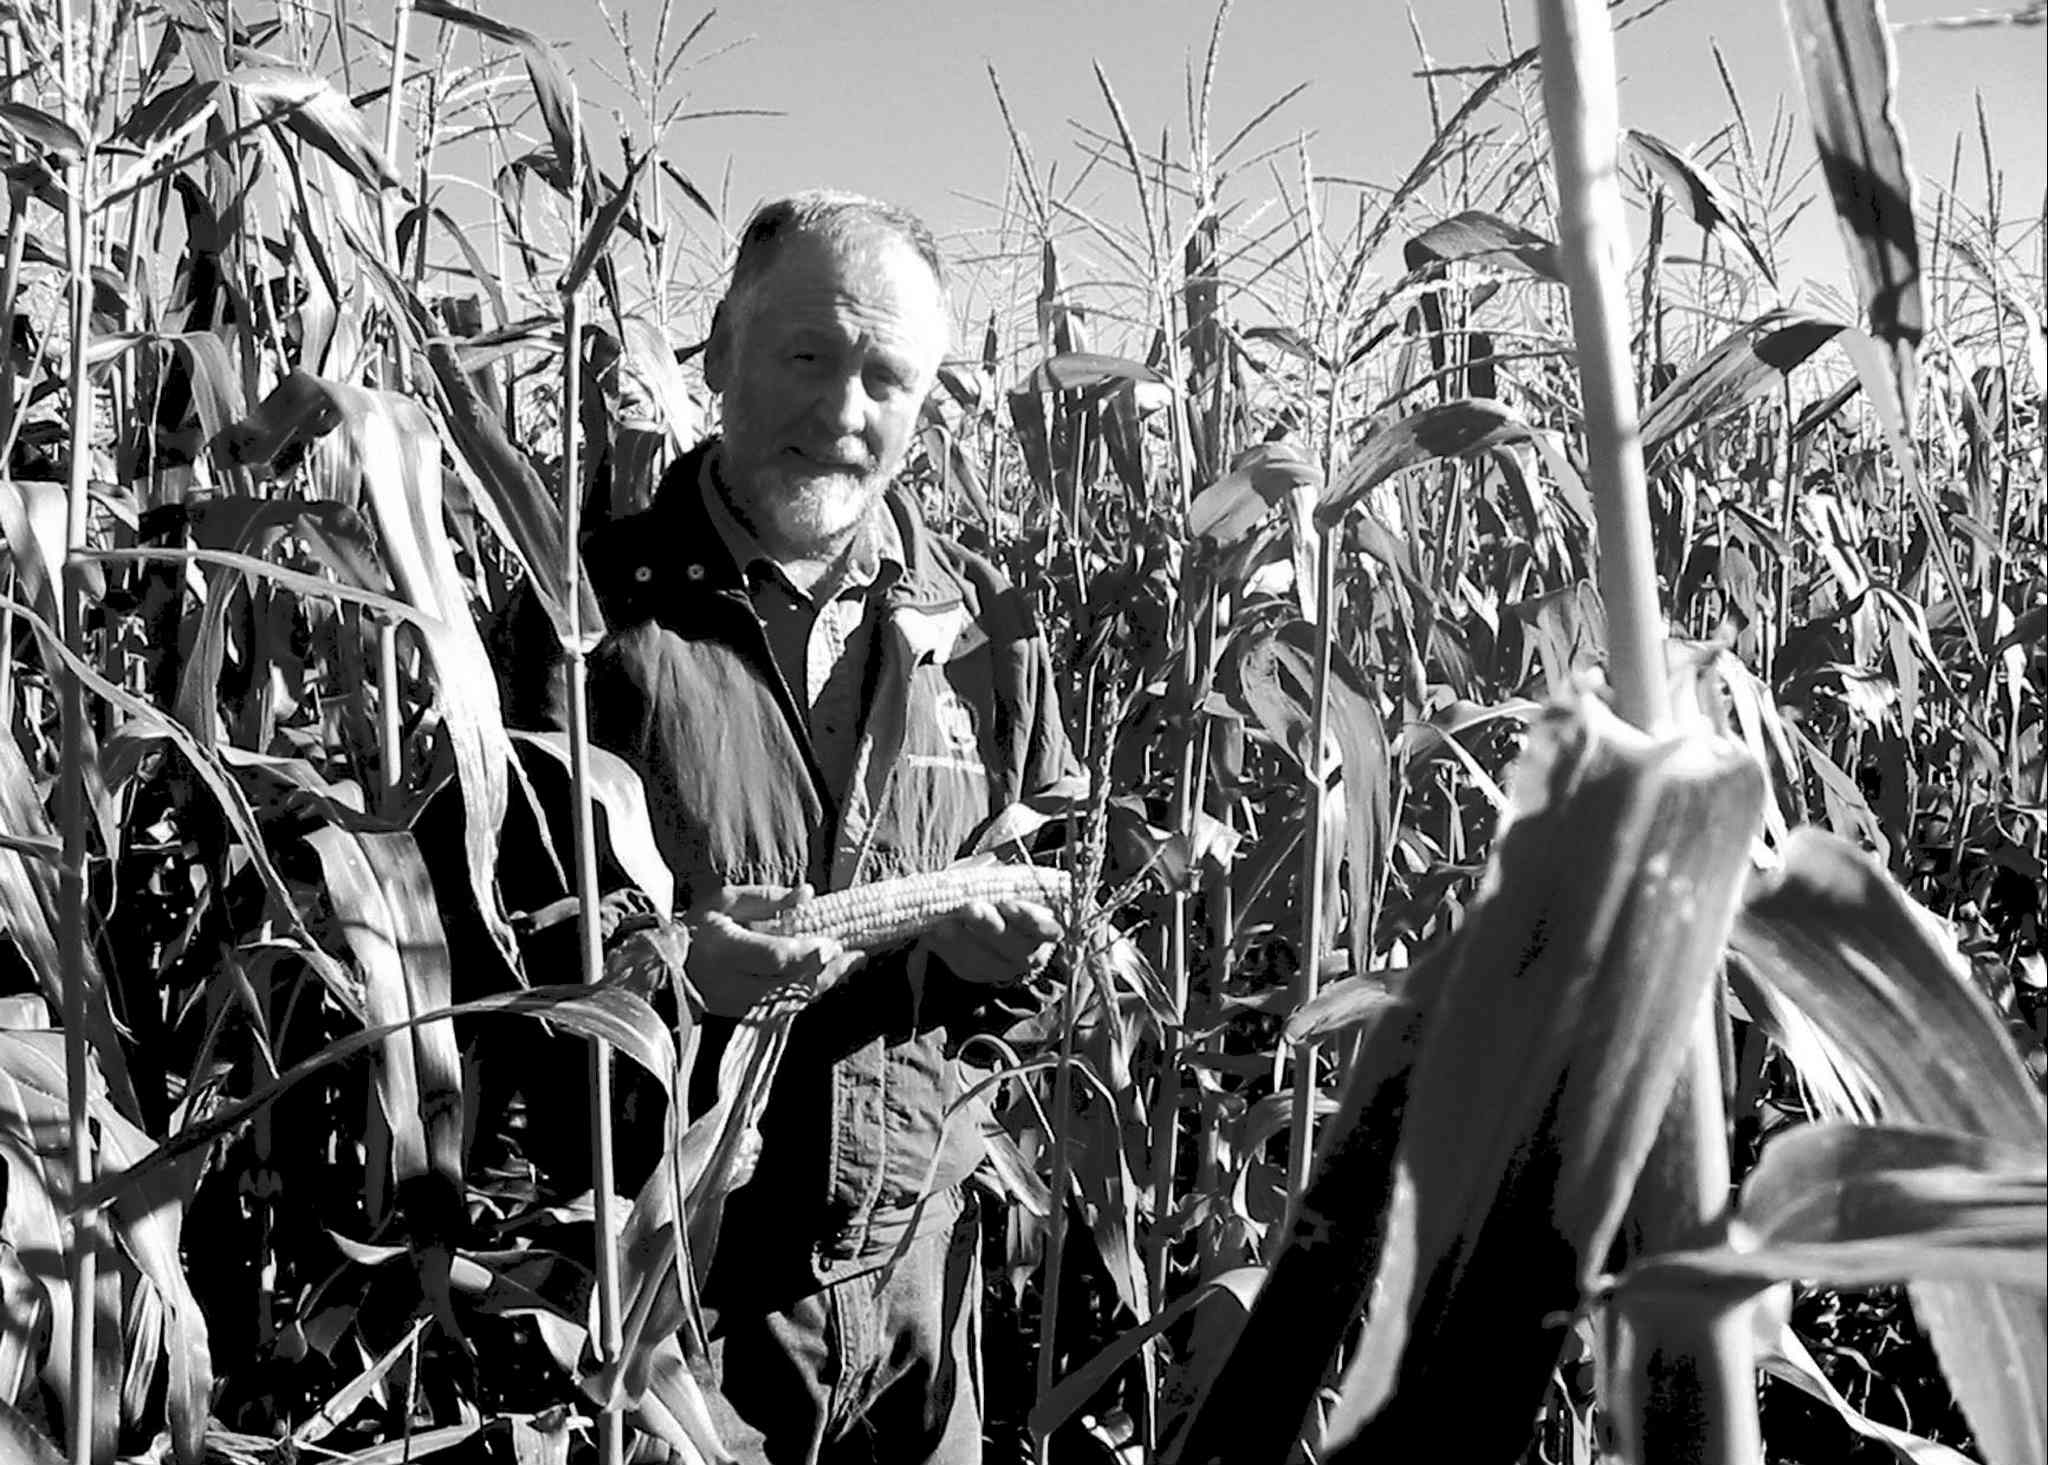 Eric Fridfinnson has 300 acres of corn this year, and he sees it becoming a permanent fixture in their crop rotation.